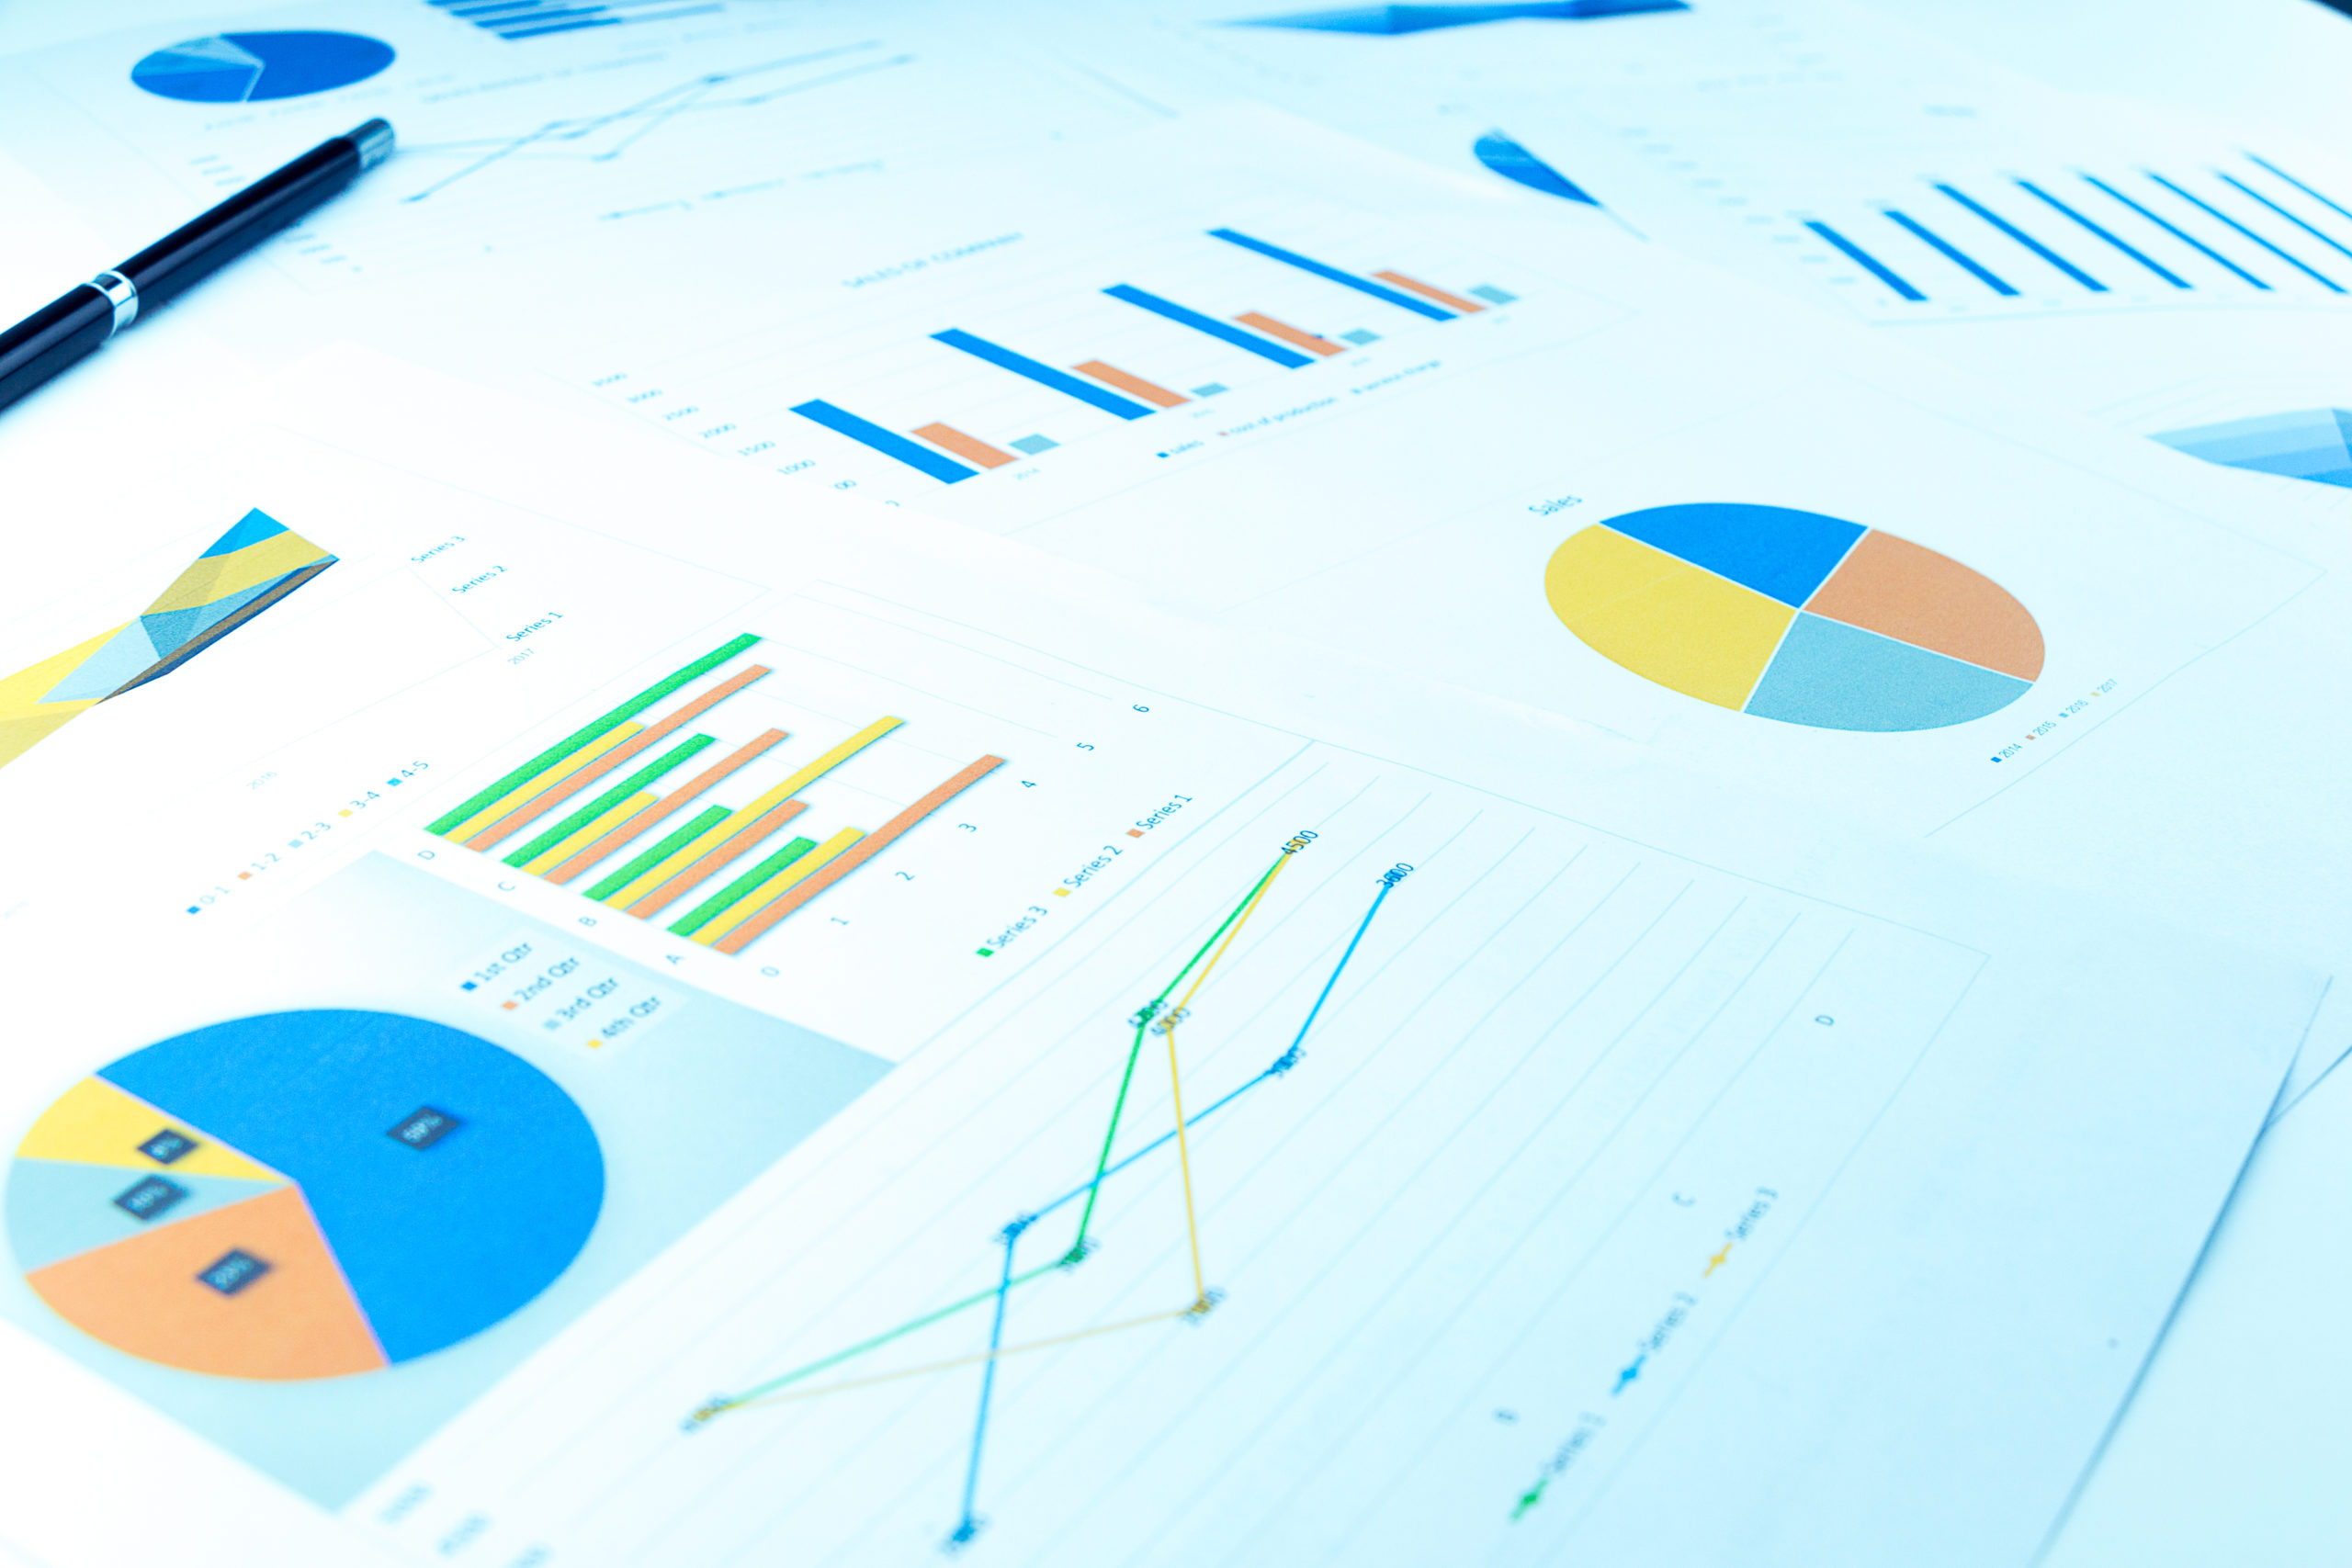 Graphs and pie charts show on Xero cloud accounting software